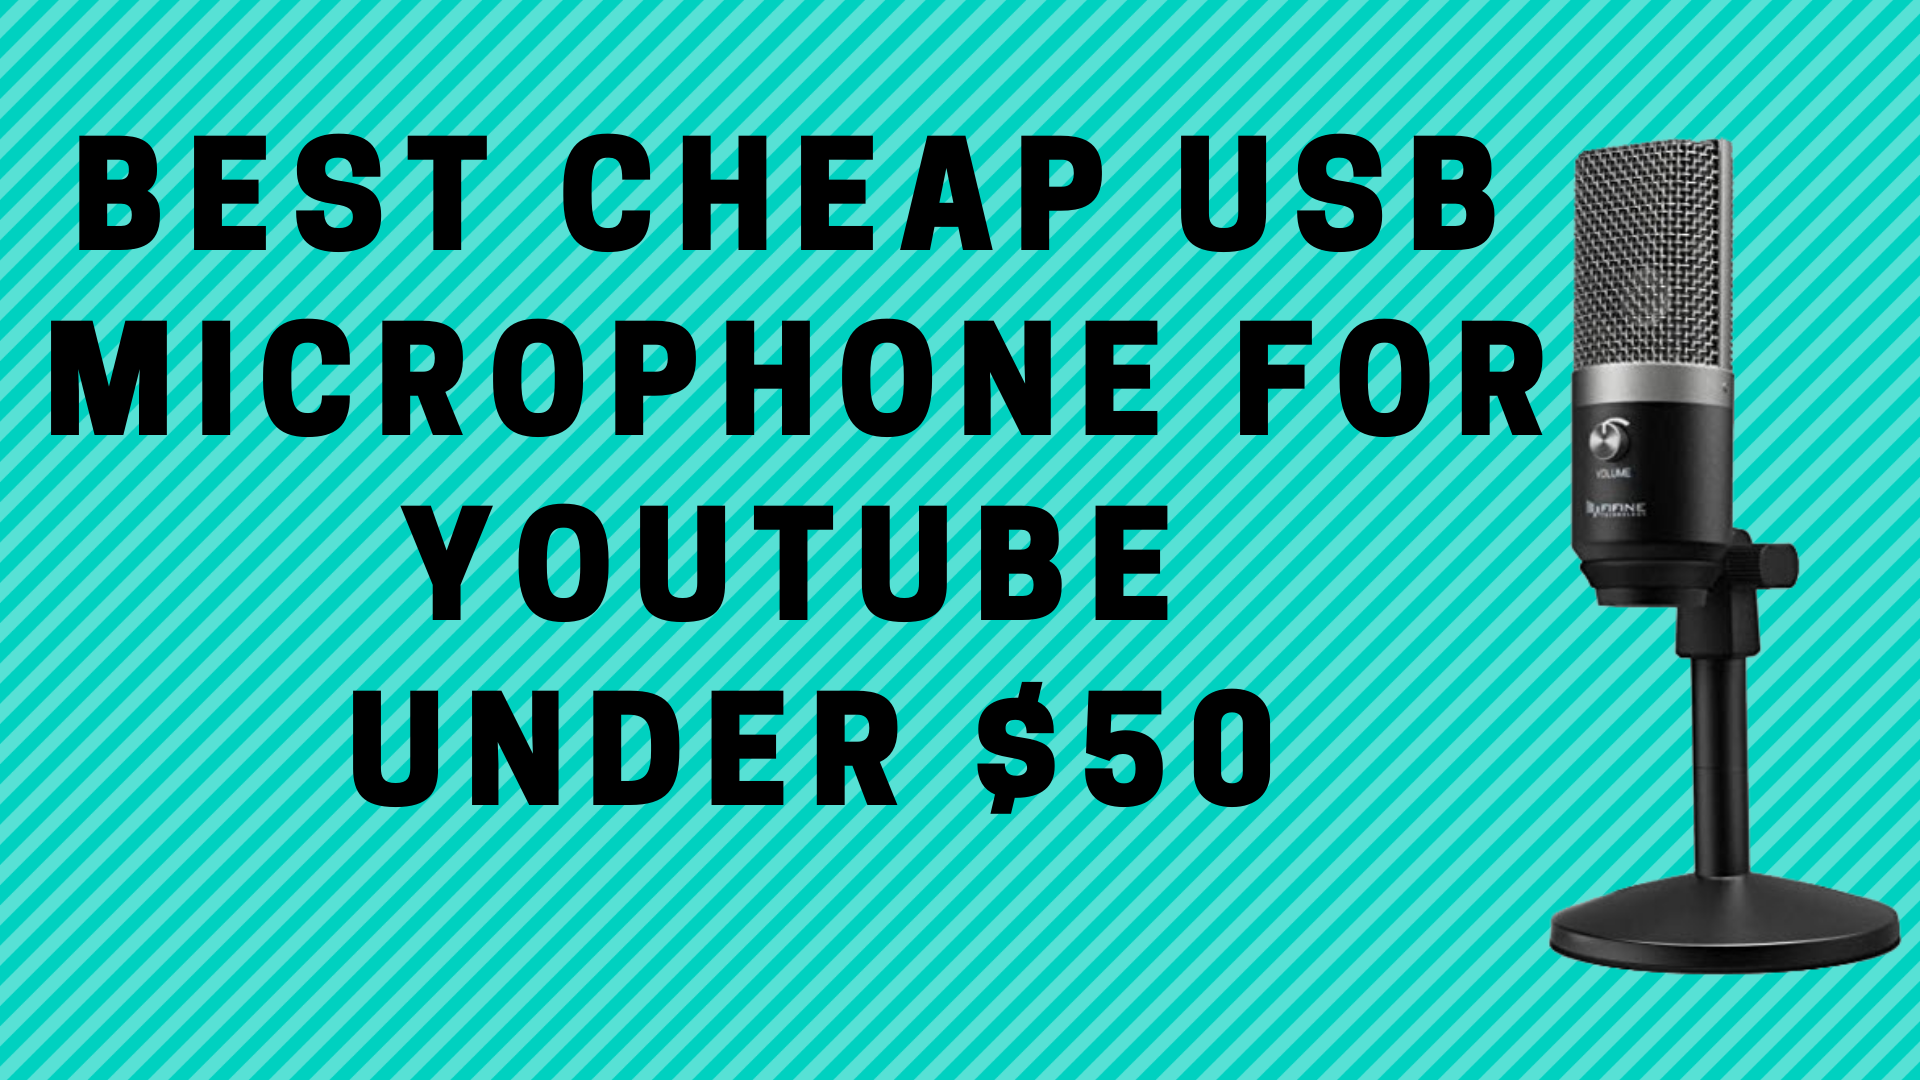 Best Usb Microphone Under 50 : best cheap usb microphone for youtube under 50 ~ Hamham.info Haus und Dekorationen